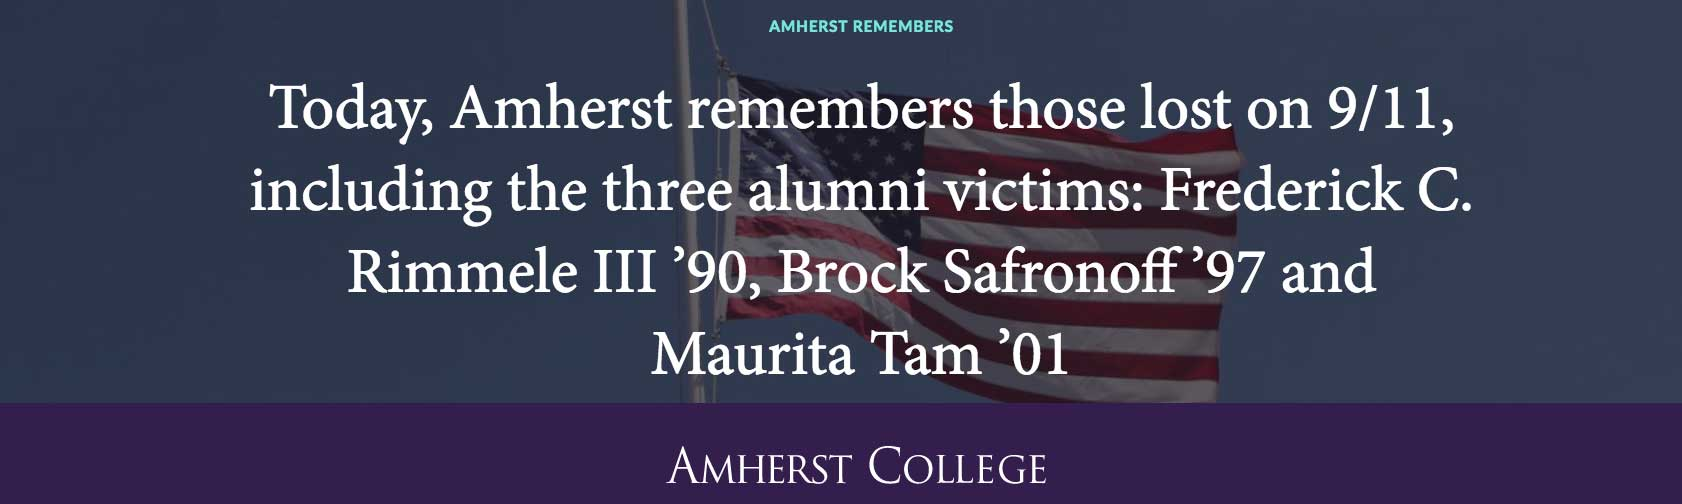 Today, Amherst remembers those lost on 9/11, including the three alumni.